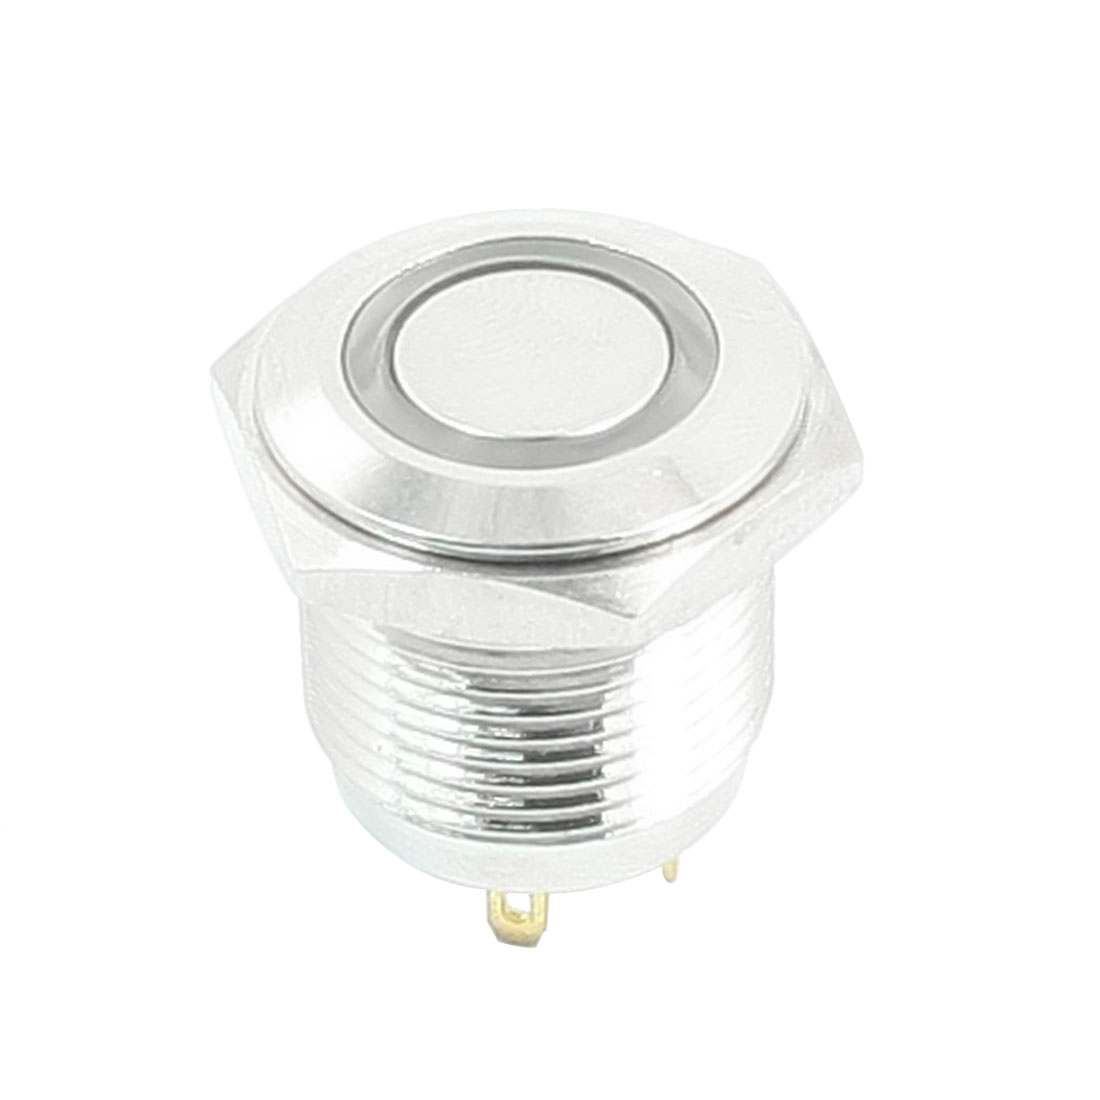 DC 3V Blue Power Indicator LED Angel Eye SPST Flat Head Panel Mount Momentary Metal Push Button Switch 16mm Thread